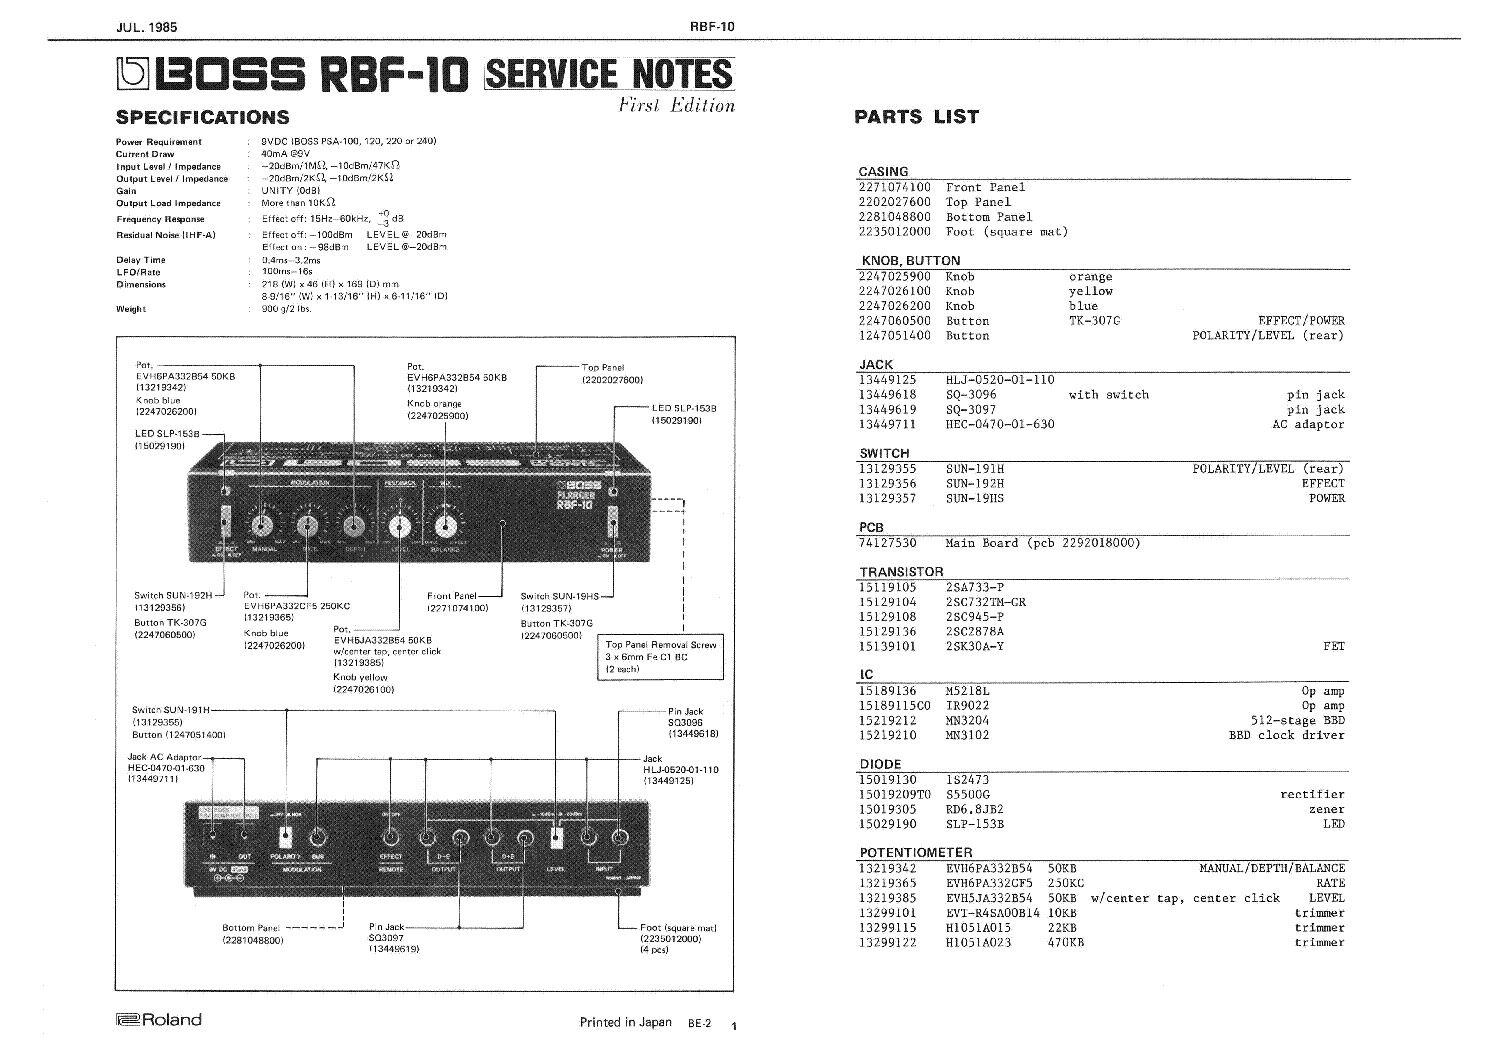 BOSS DS-1 DISTORTION PEDAL Service Manual download, schematics ... on boss lm-2 schematic, boss ce-3 schematic, boss od-2 schematic, boss ds 1 modification, boss ds 1 keeley mod, boss sd1 schematic, boss oc-2 schematic, boss sp1, boss ge-7 schematic, boss dm-2 schematic, boss overdrive schematic, boss hm-2 schematic, boss od-1 mod instruction, boss fs 6 footswitch schematic, boss metal zone, boss ph-1 schematic, boss ls 2 schematic, boss mt 2 schematic, boss blues driver schematic, boss ce-2 schematic,